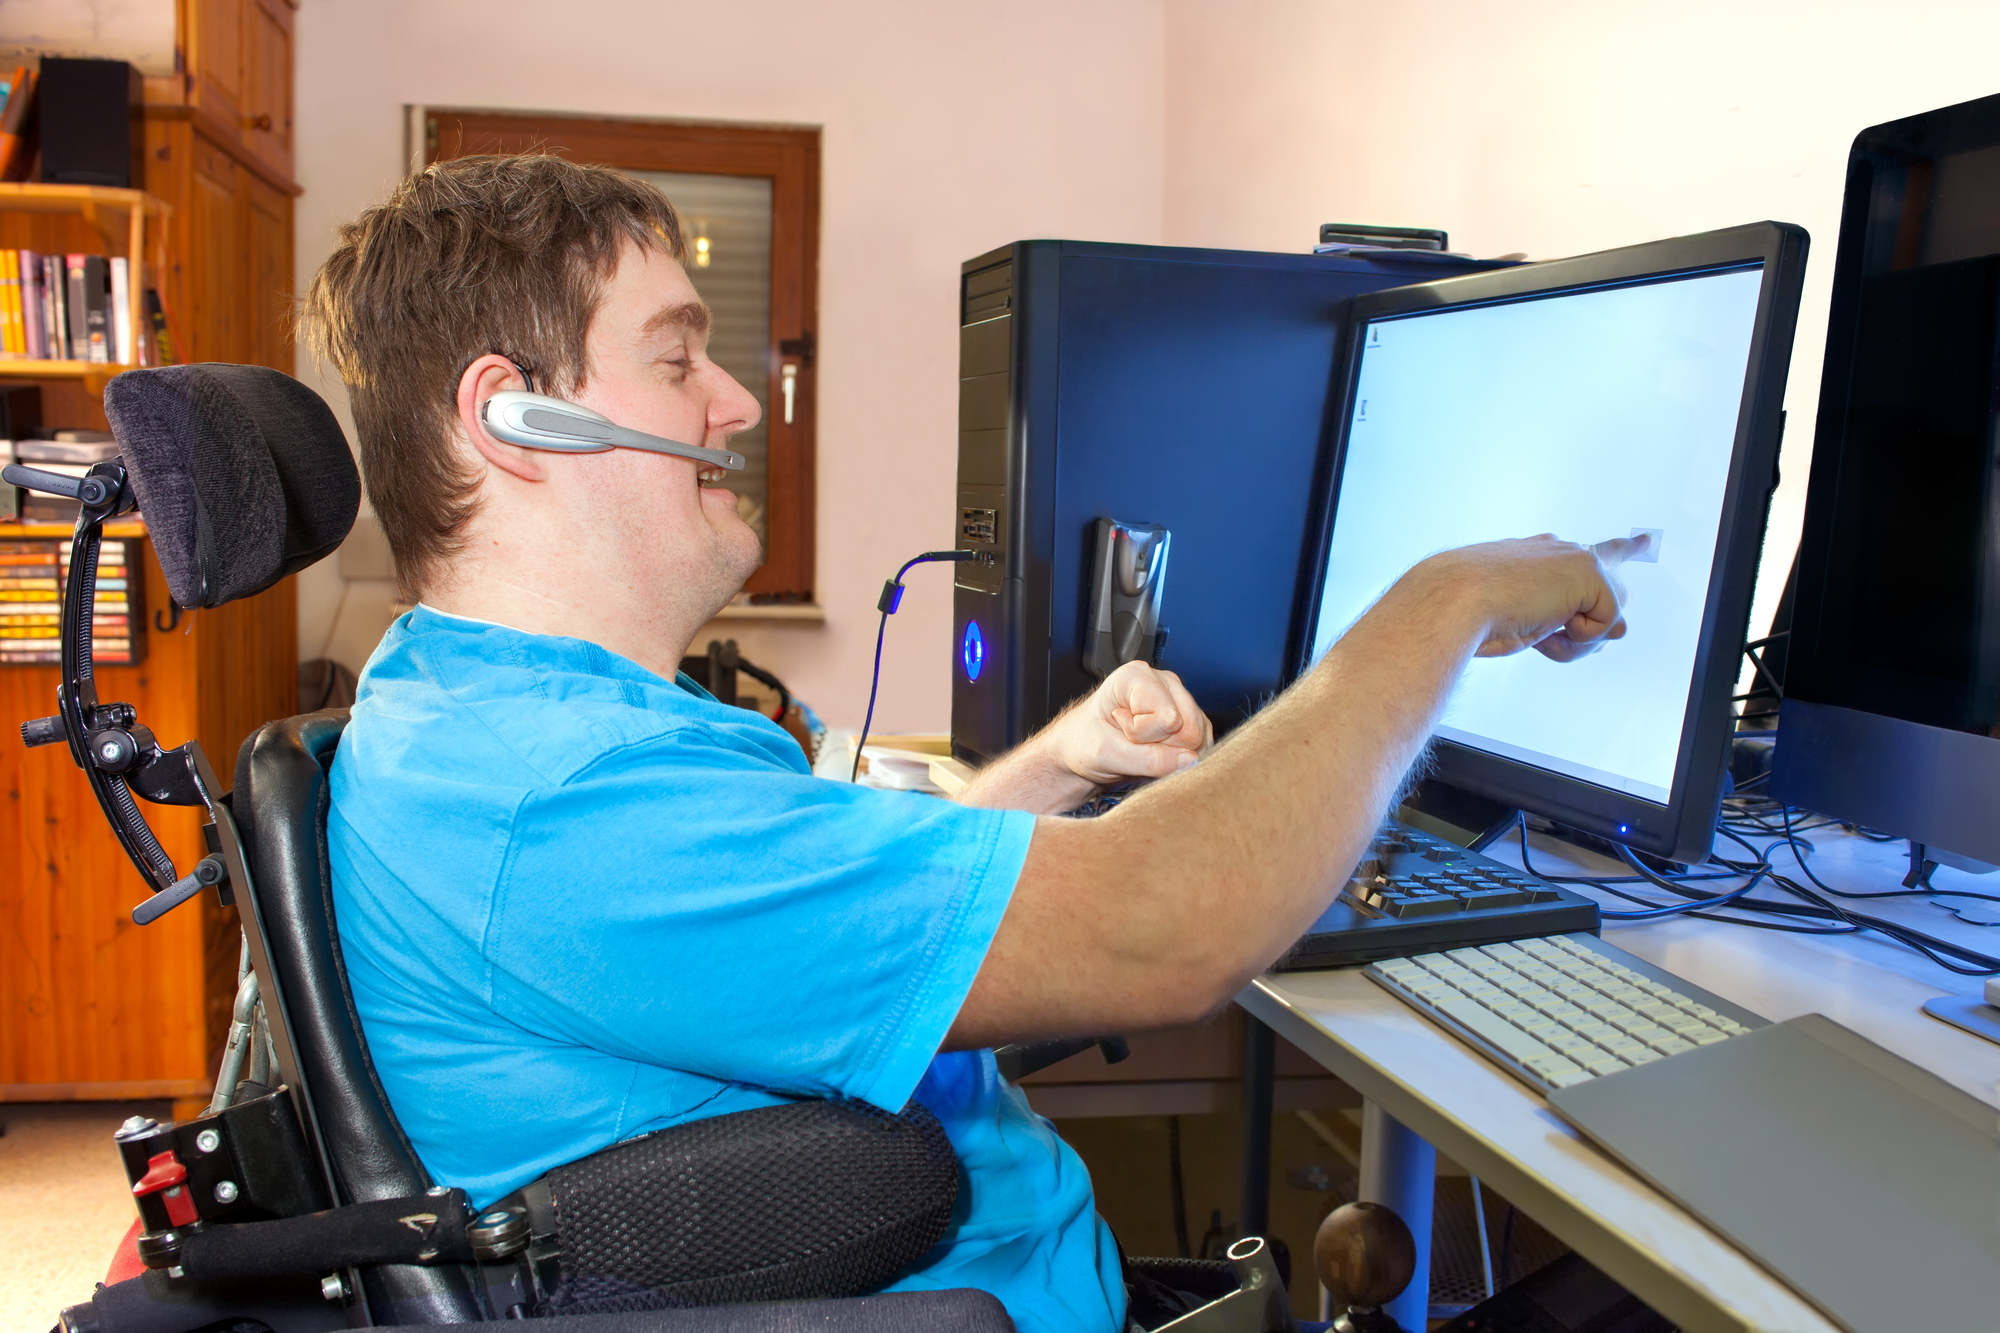 Man in wheelchair with headset participating in virtual meeting